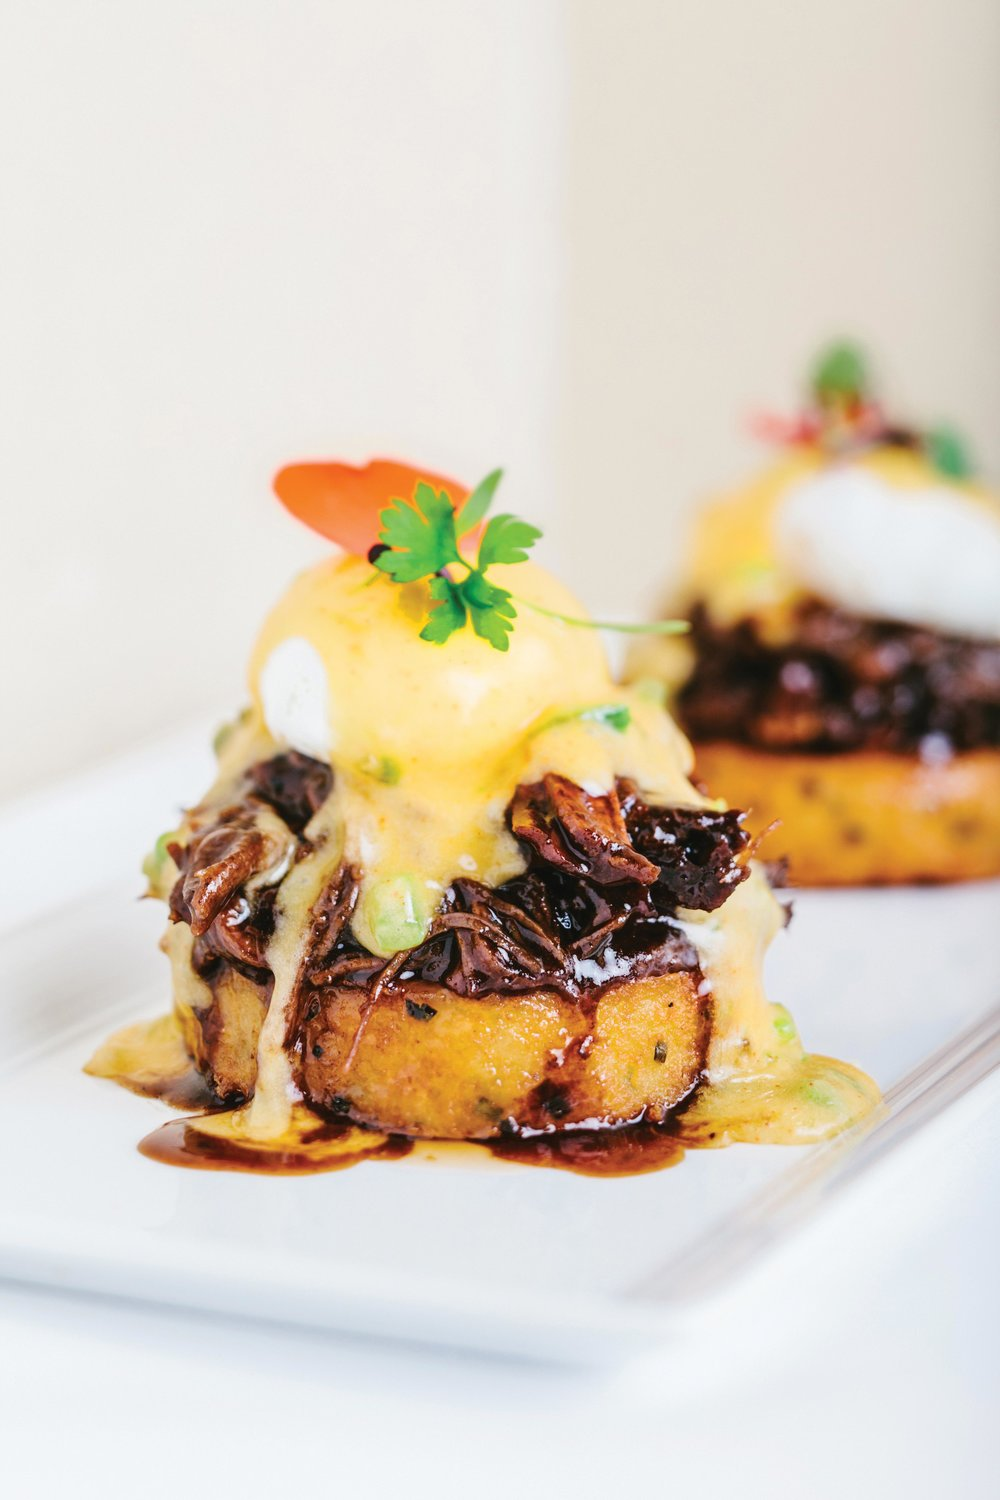 Chef Keller's Hangover Angus Short Rib Benedict — the short rib is slowly cooked and placed on top of a potato cake. A jalapeño-based hollandaise sauce tops the short rib, and atop that is a poached egg. This is part of the Fleur brunch experience.Photos Courtesy of Mandalay Bay